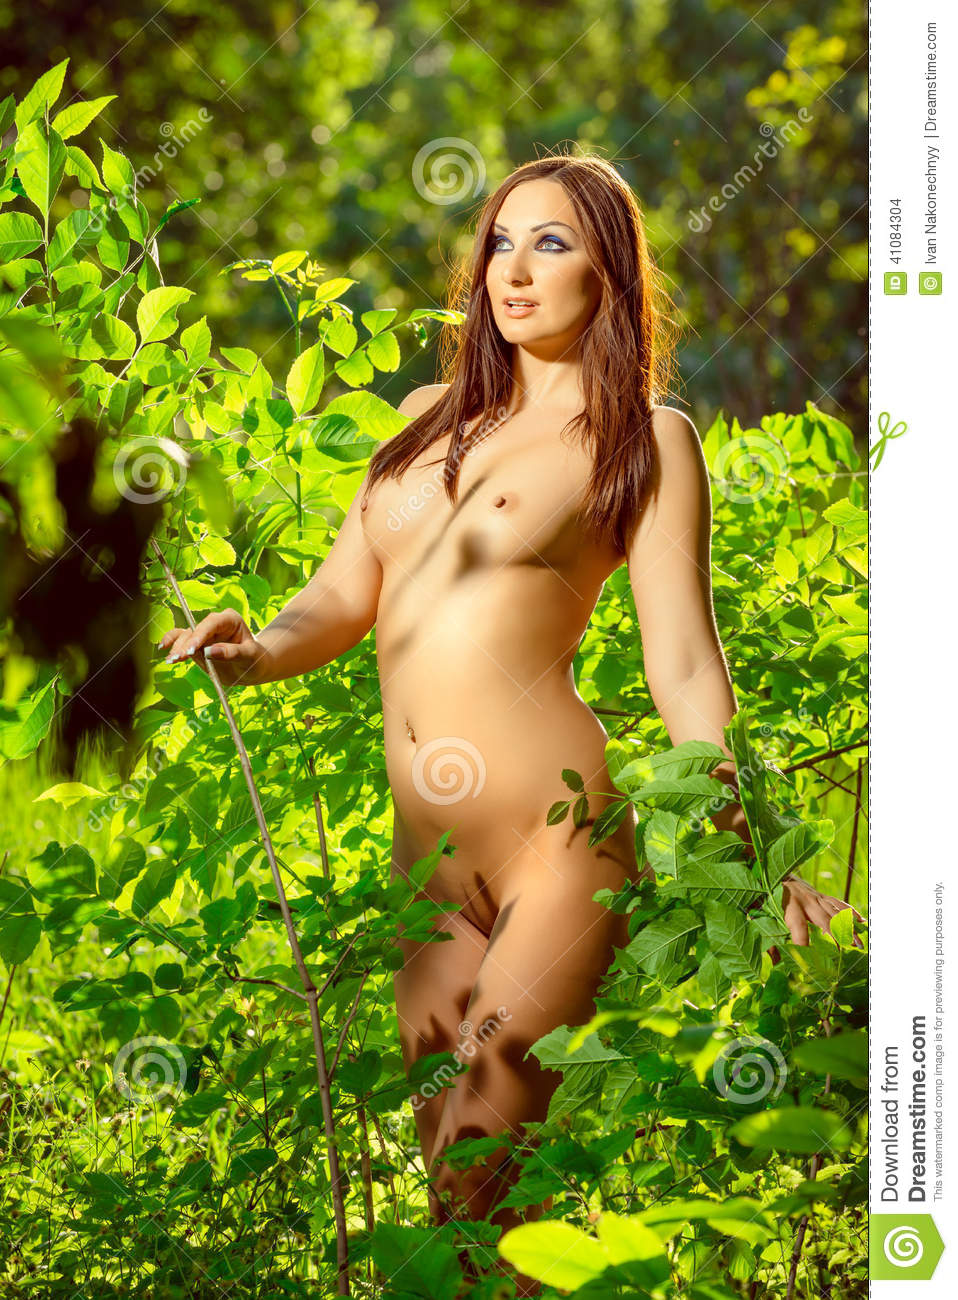 Nude Woman In Nature Stock Photo Image Of Beauty, Nude -3536